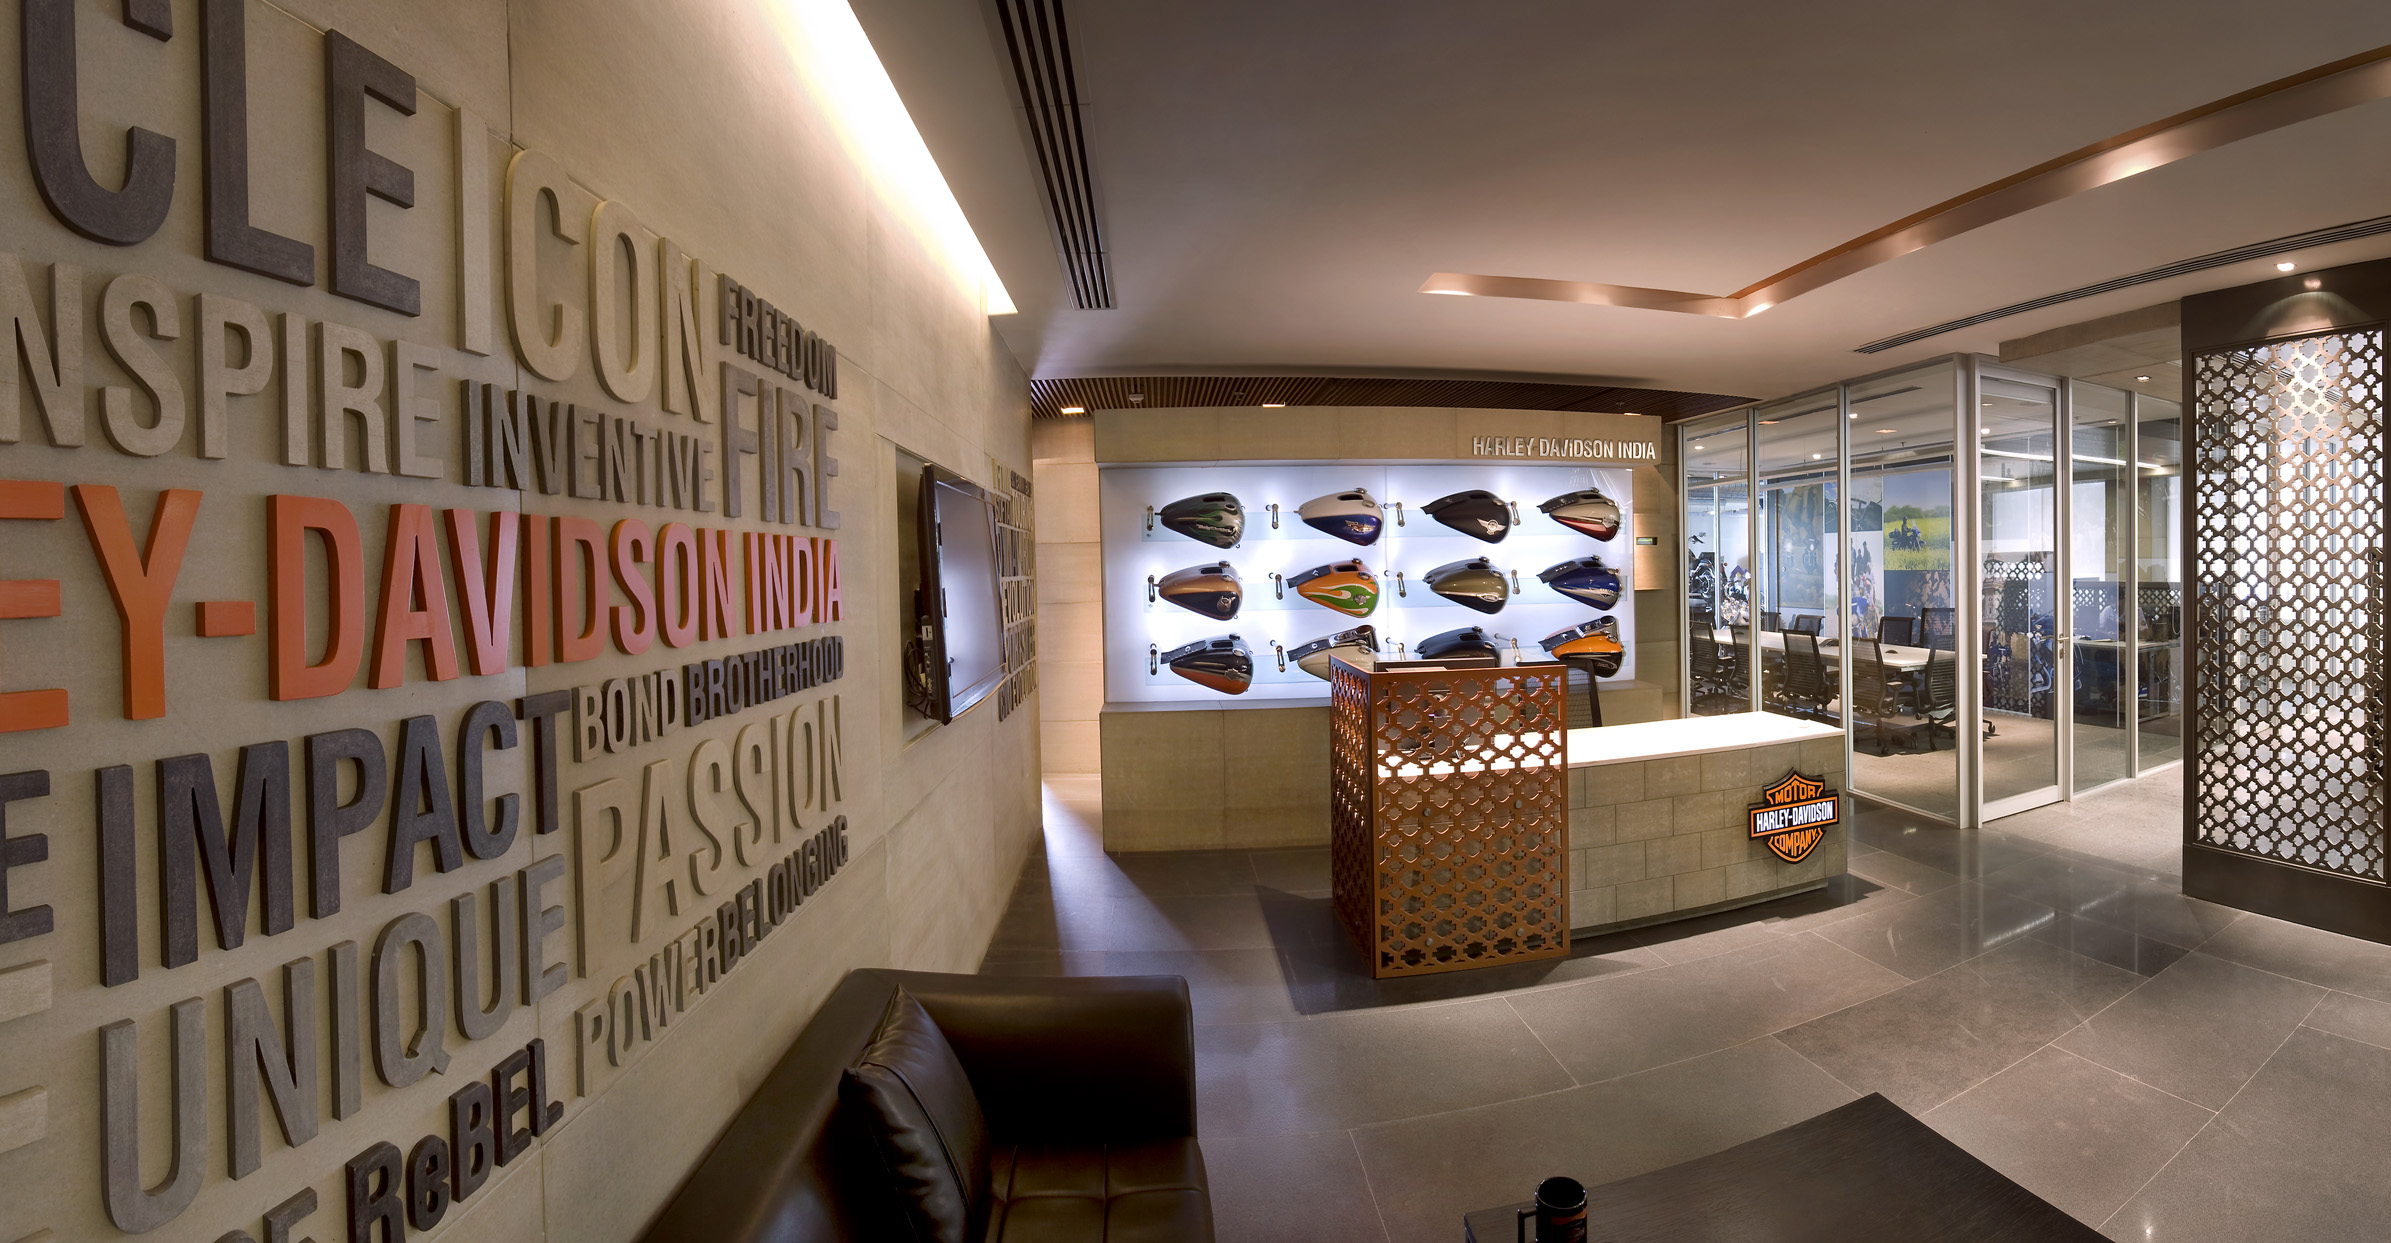 Harley davidson corporate office for Corporate office interior design